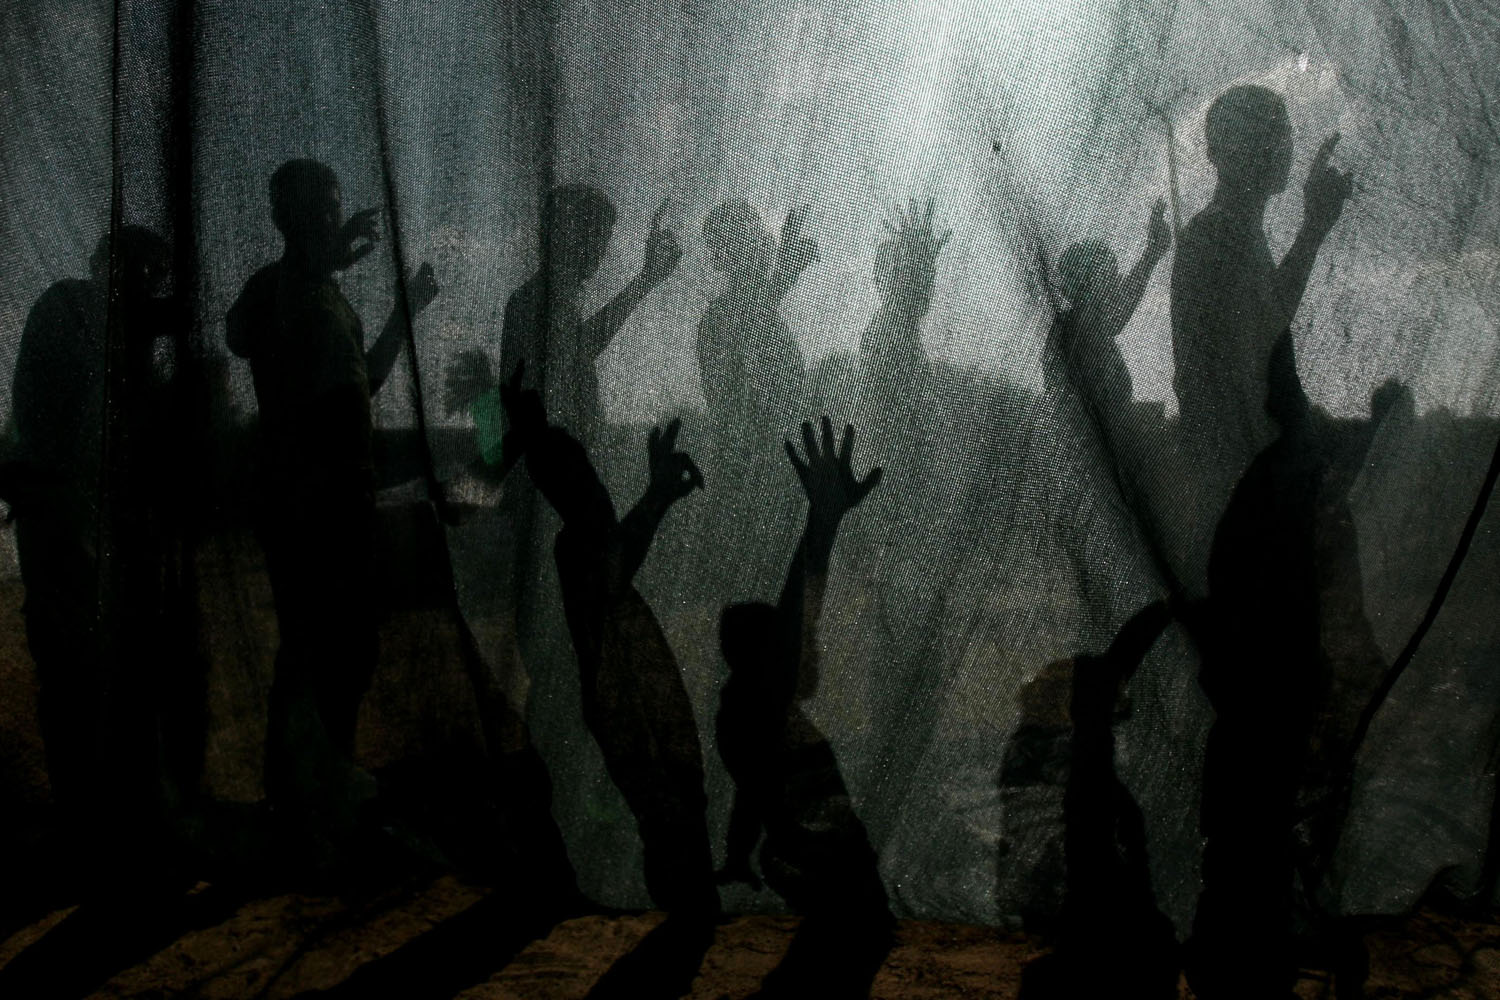 Jun. 9, 2014. Palestinian youths take part in a summer camp organized by the Hamas movement in Rafah, southern Gaza Strip.